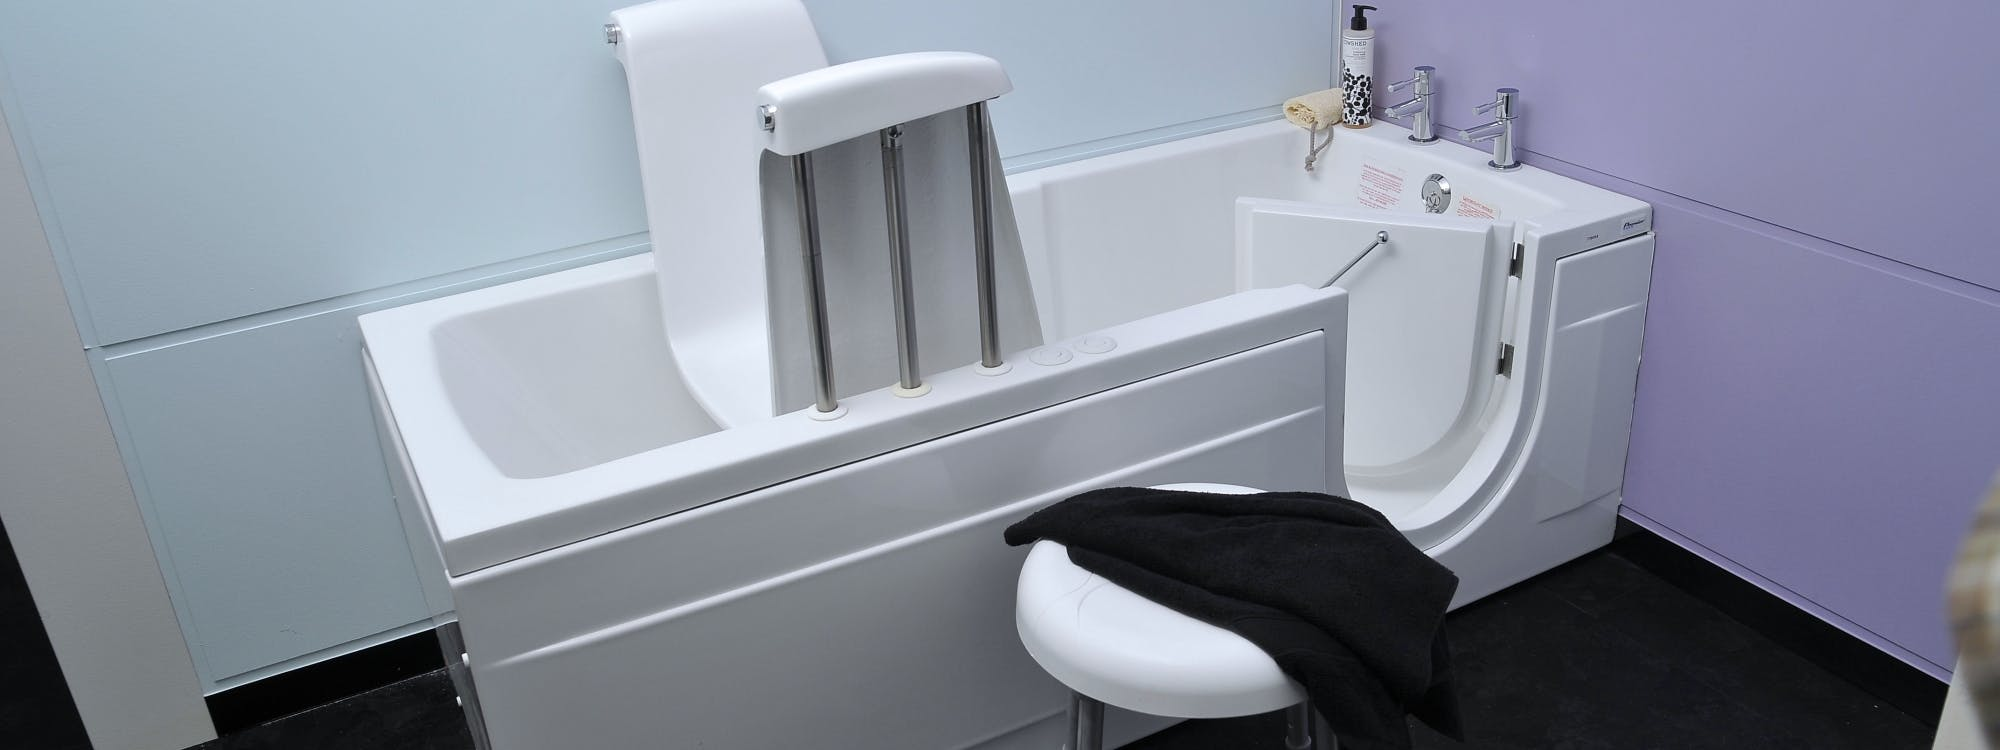 Visit our disabled bathroom showroom in Leeds and discover a wide range of elderly walk-in baths - we design, supply & install.